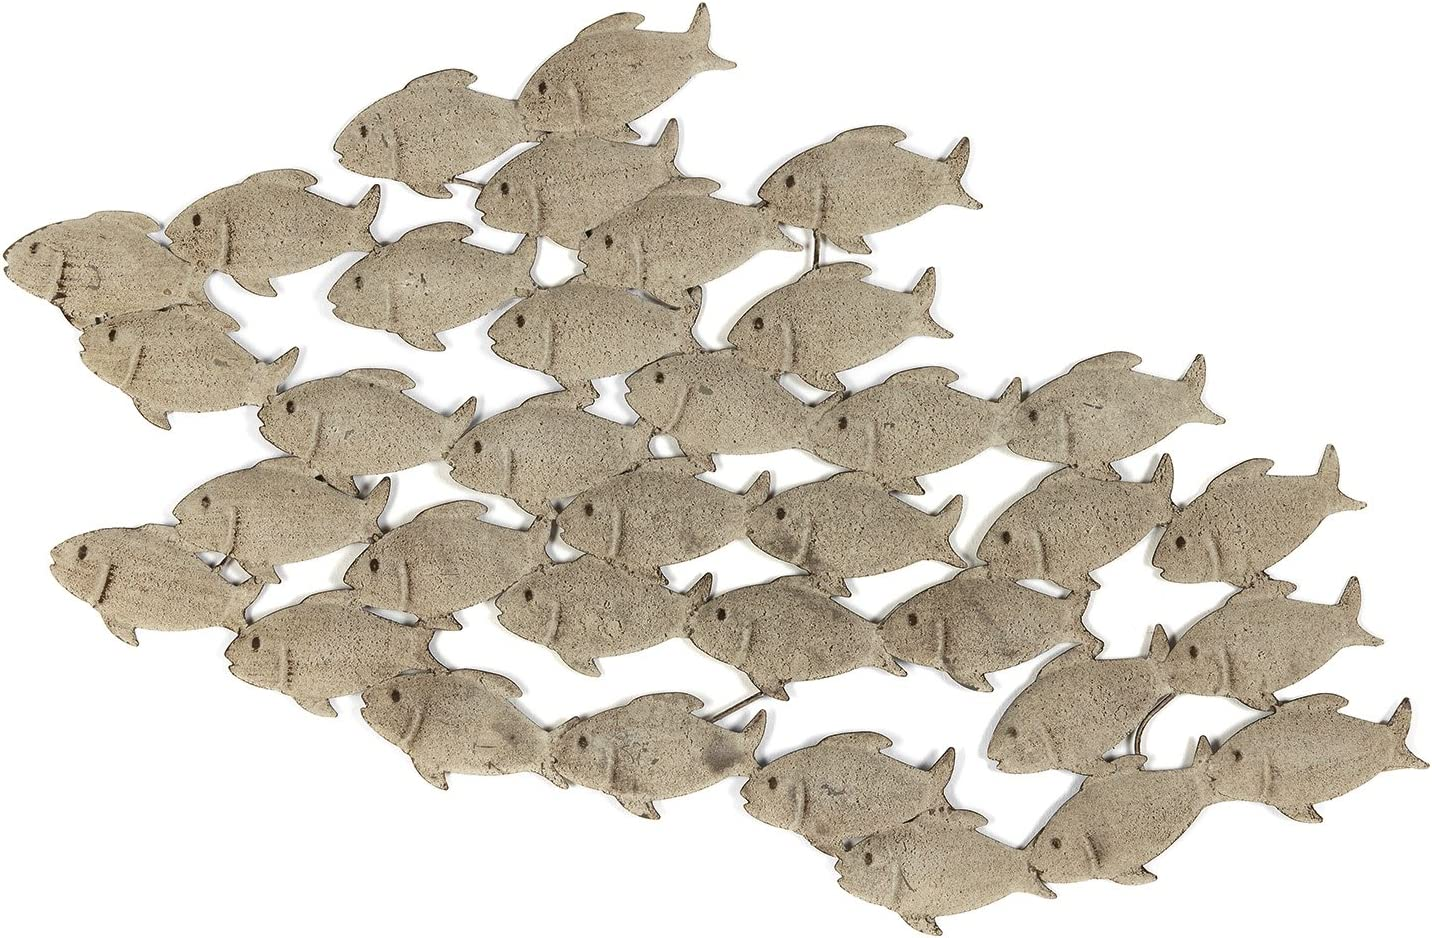 Cape Cod Large School of Fish, Hand Crafted Metal Wall Decor, Antiqued and Distressed Sand Color, 3 Ft 2 Inches Long (38.25 Inches- 97 cm)